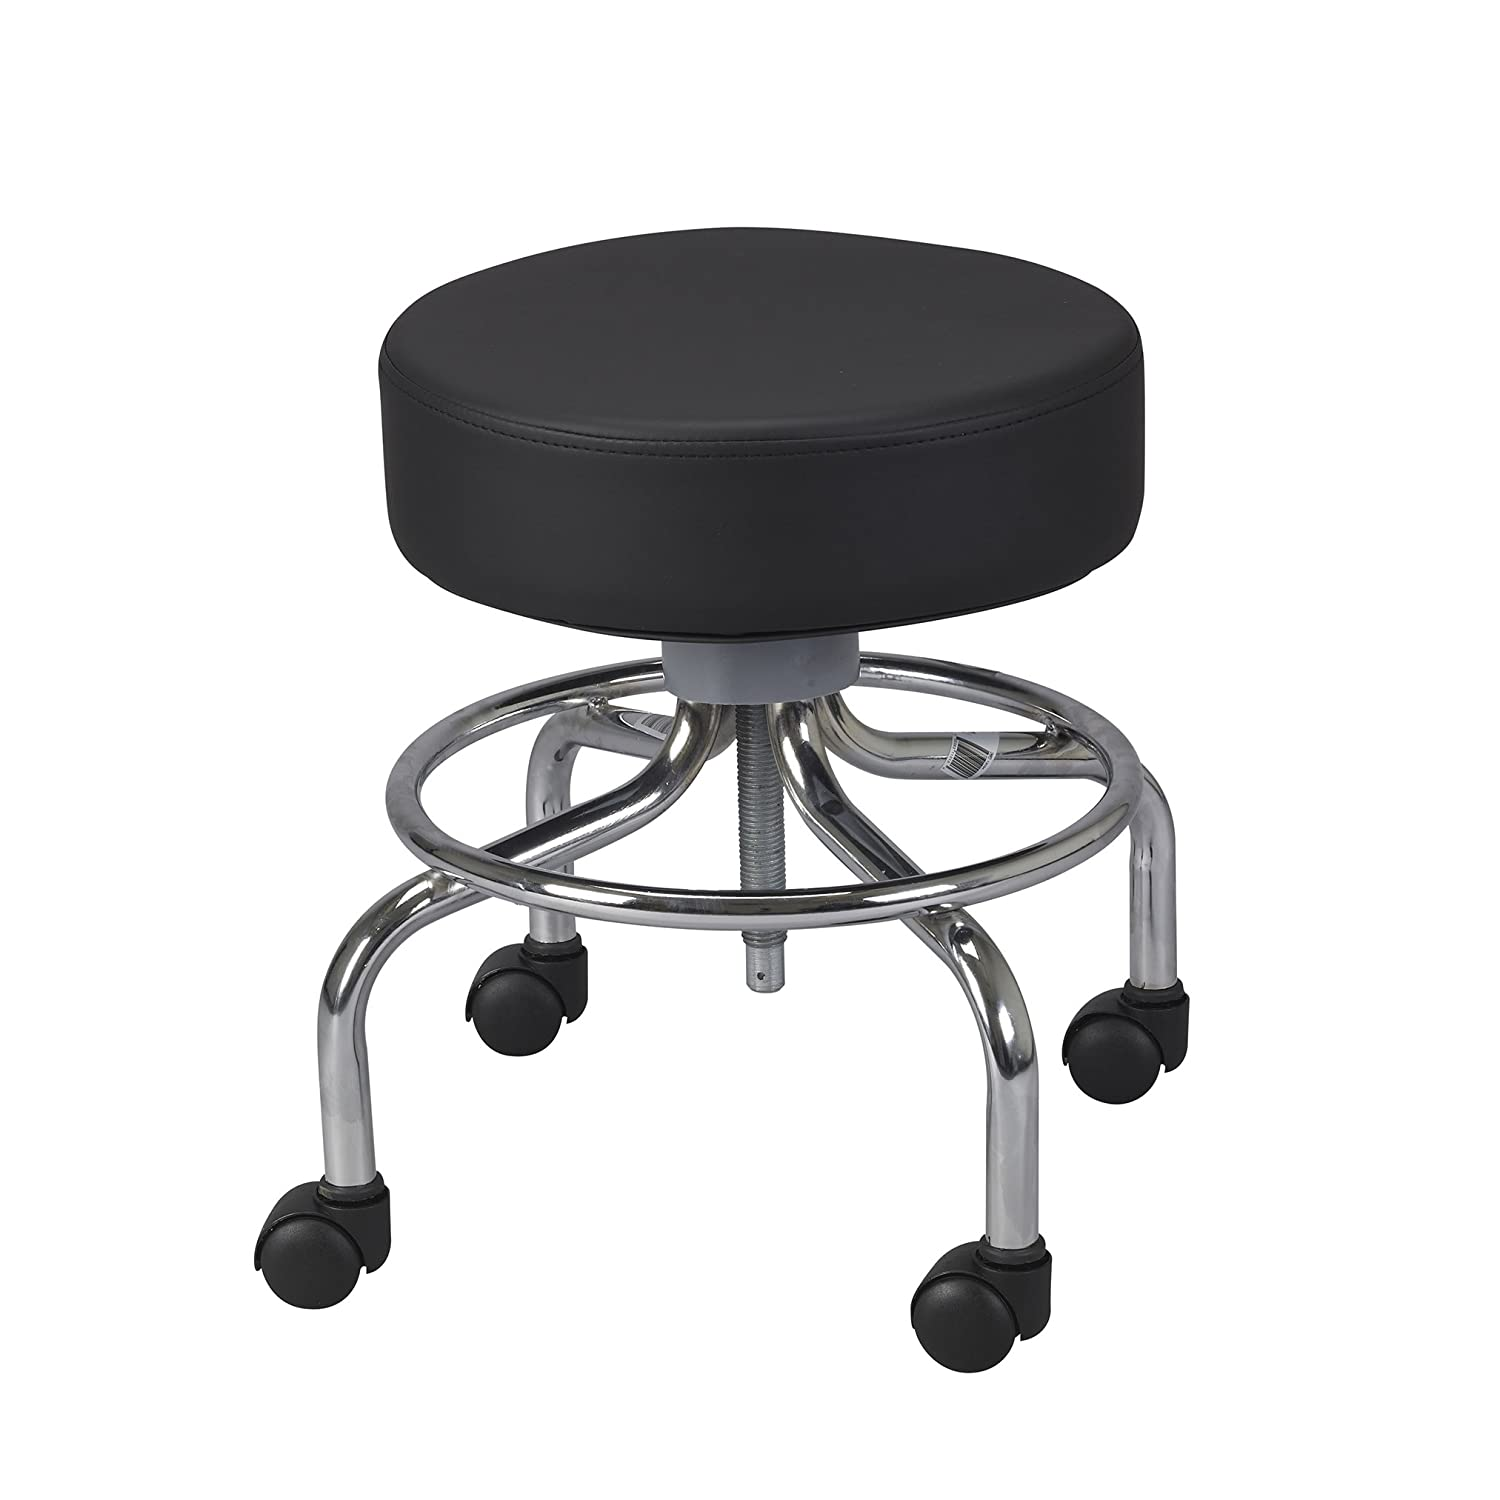 Amazon.com: Drive Medical Deluxe Wheeled Round Stool, Black: Health U0026  Personal Care